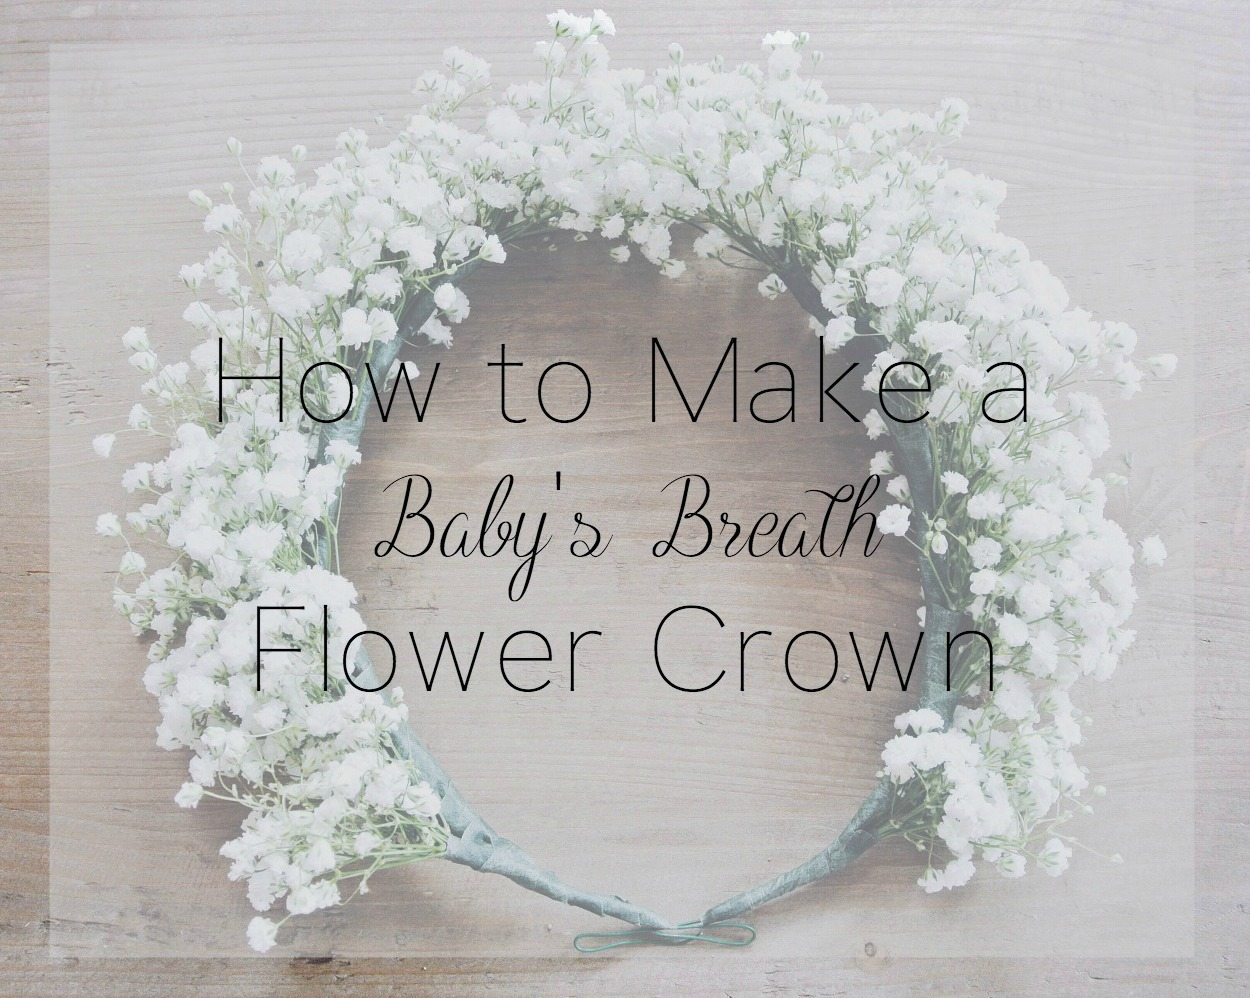 How to make a babys breath flower crown zoe with love how to make a babys breath flower crown izmirmasajfo